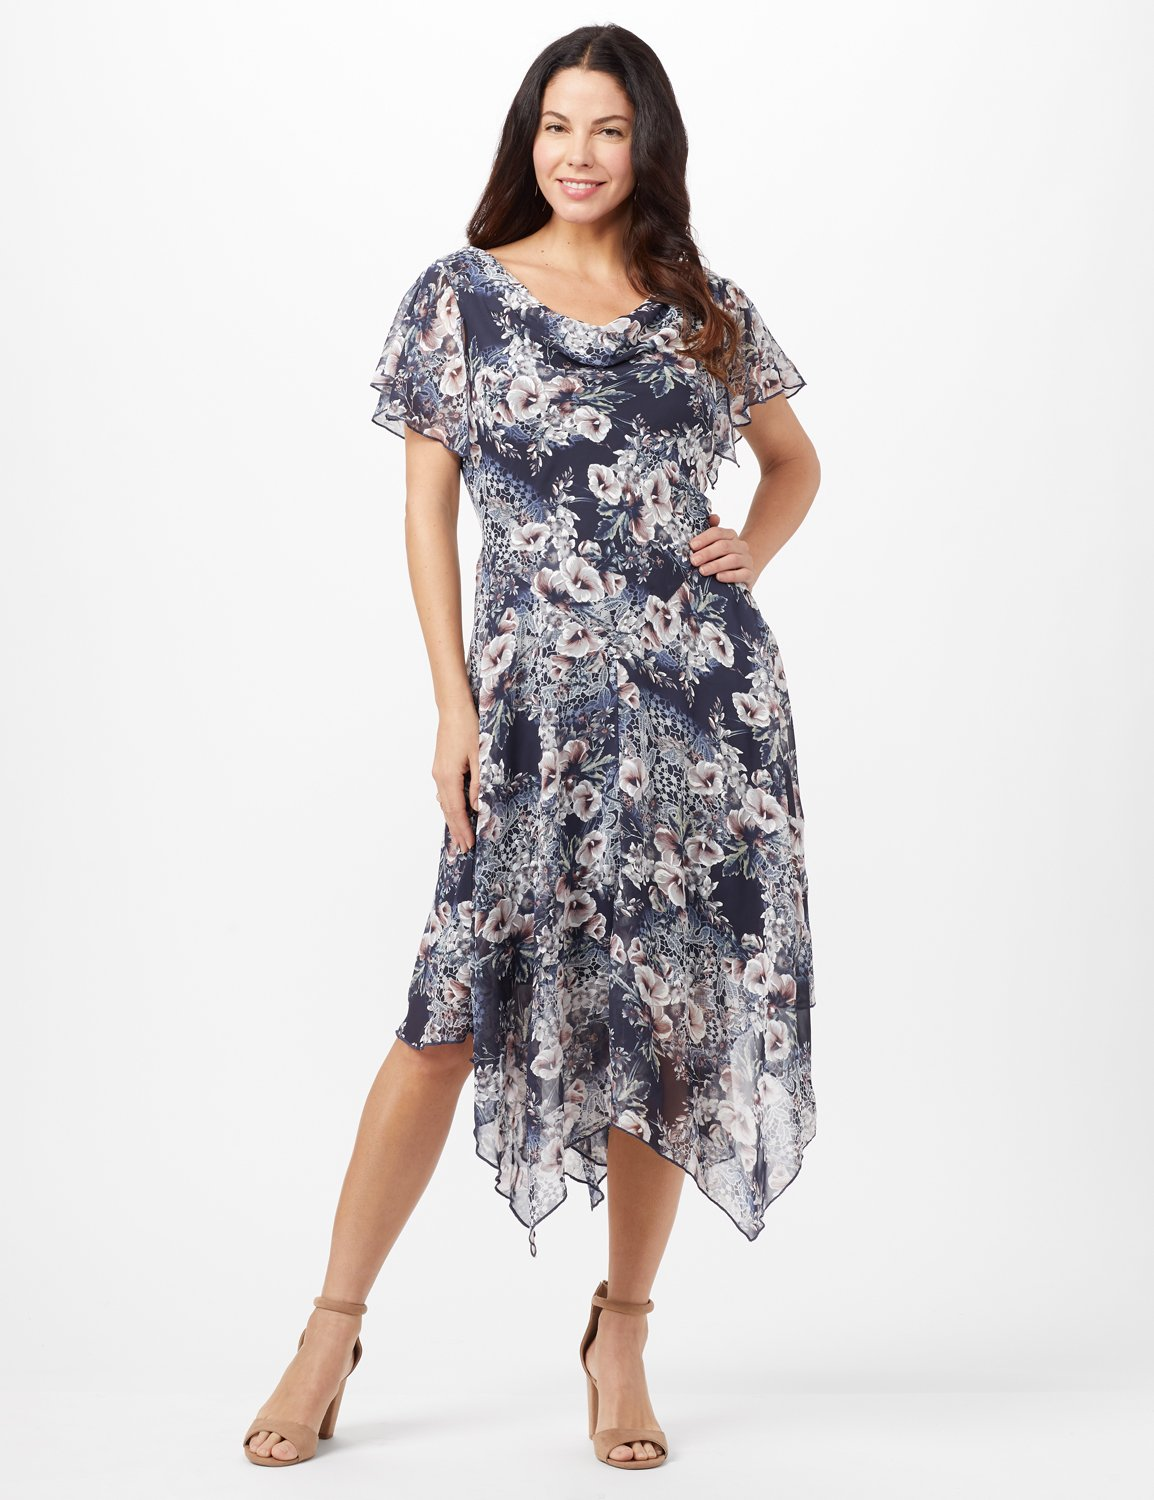 Floral Chiffon Drape Neck Hanky Hem Dress - Misses -Navy/Mauve - Front